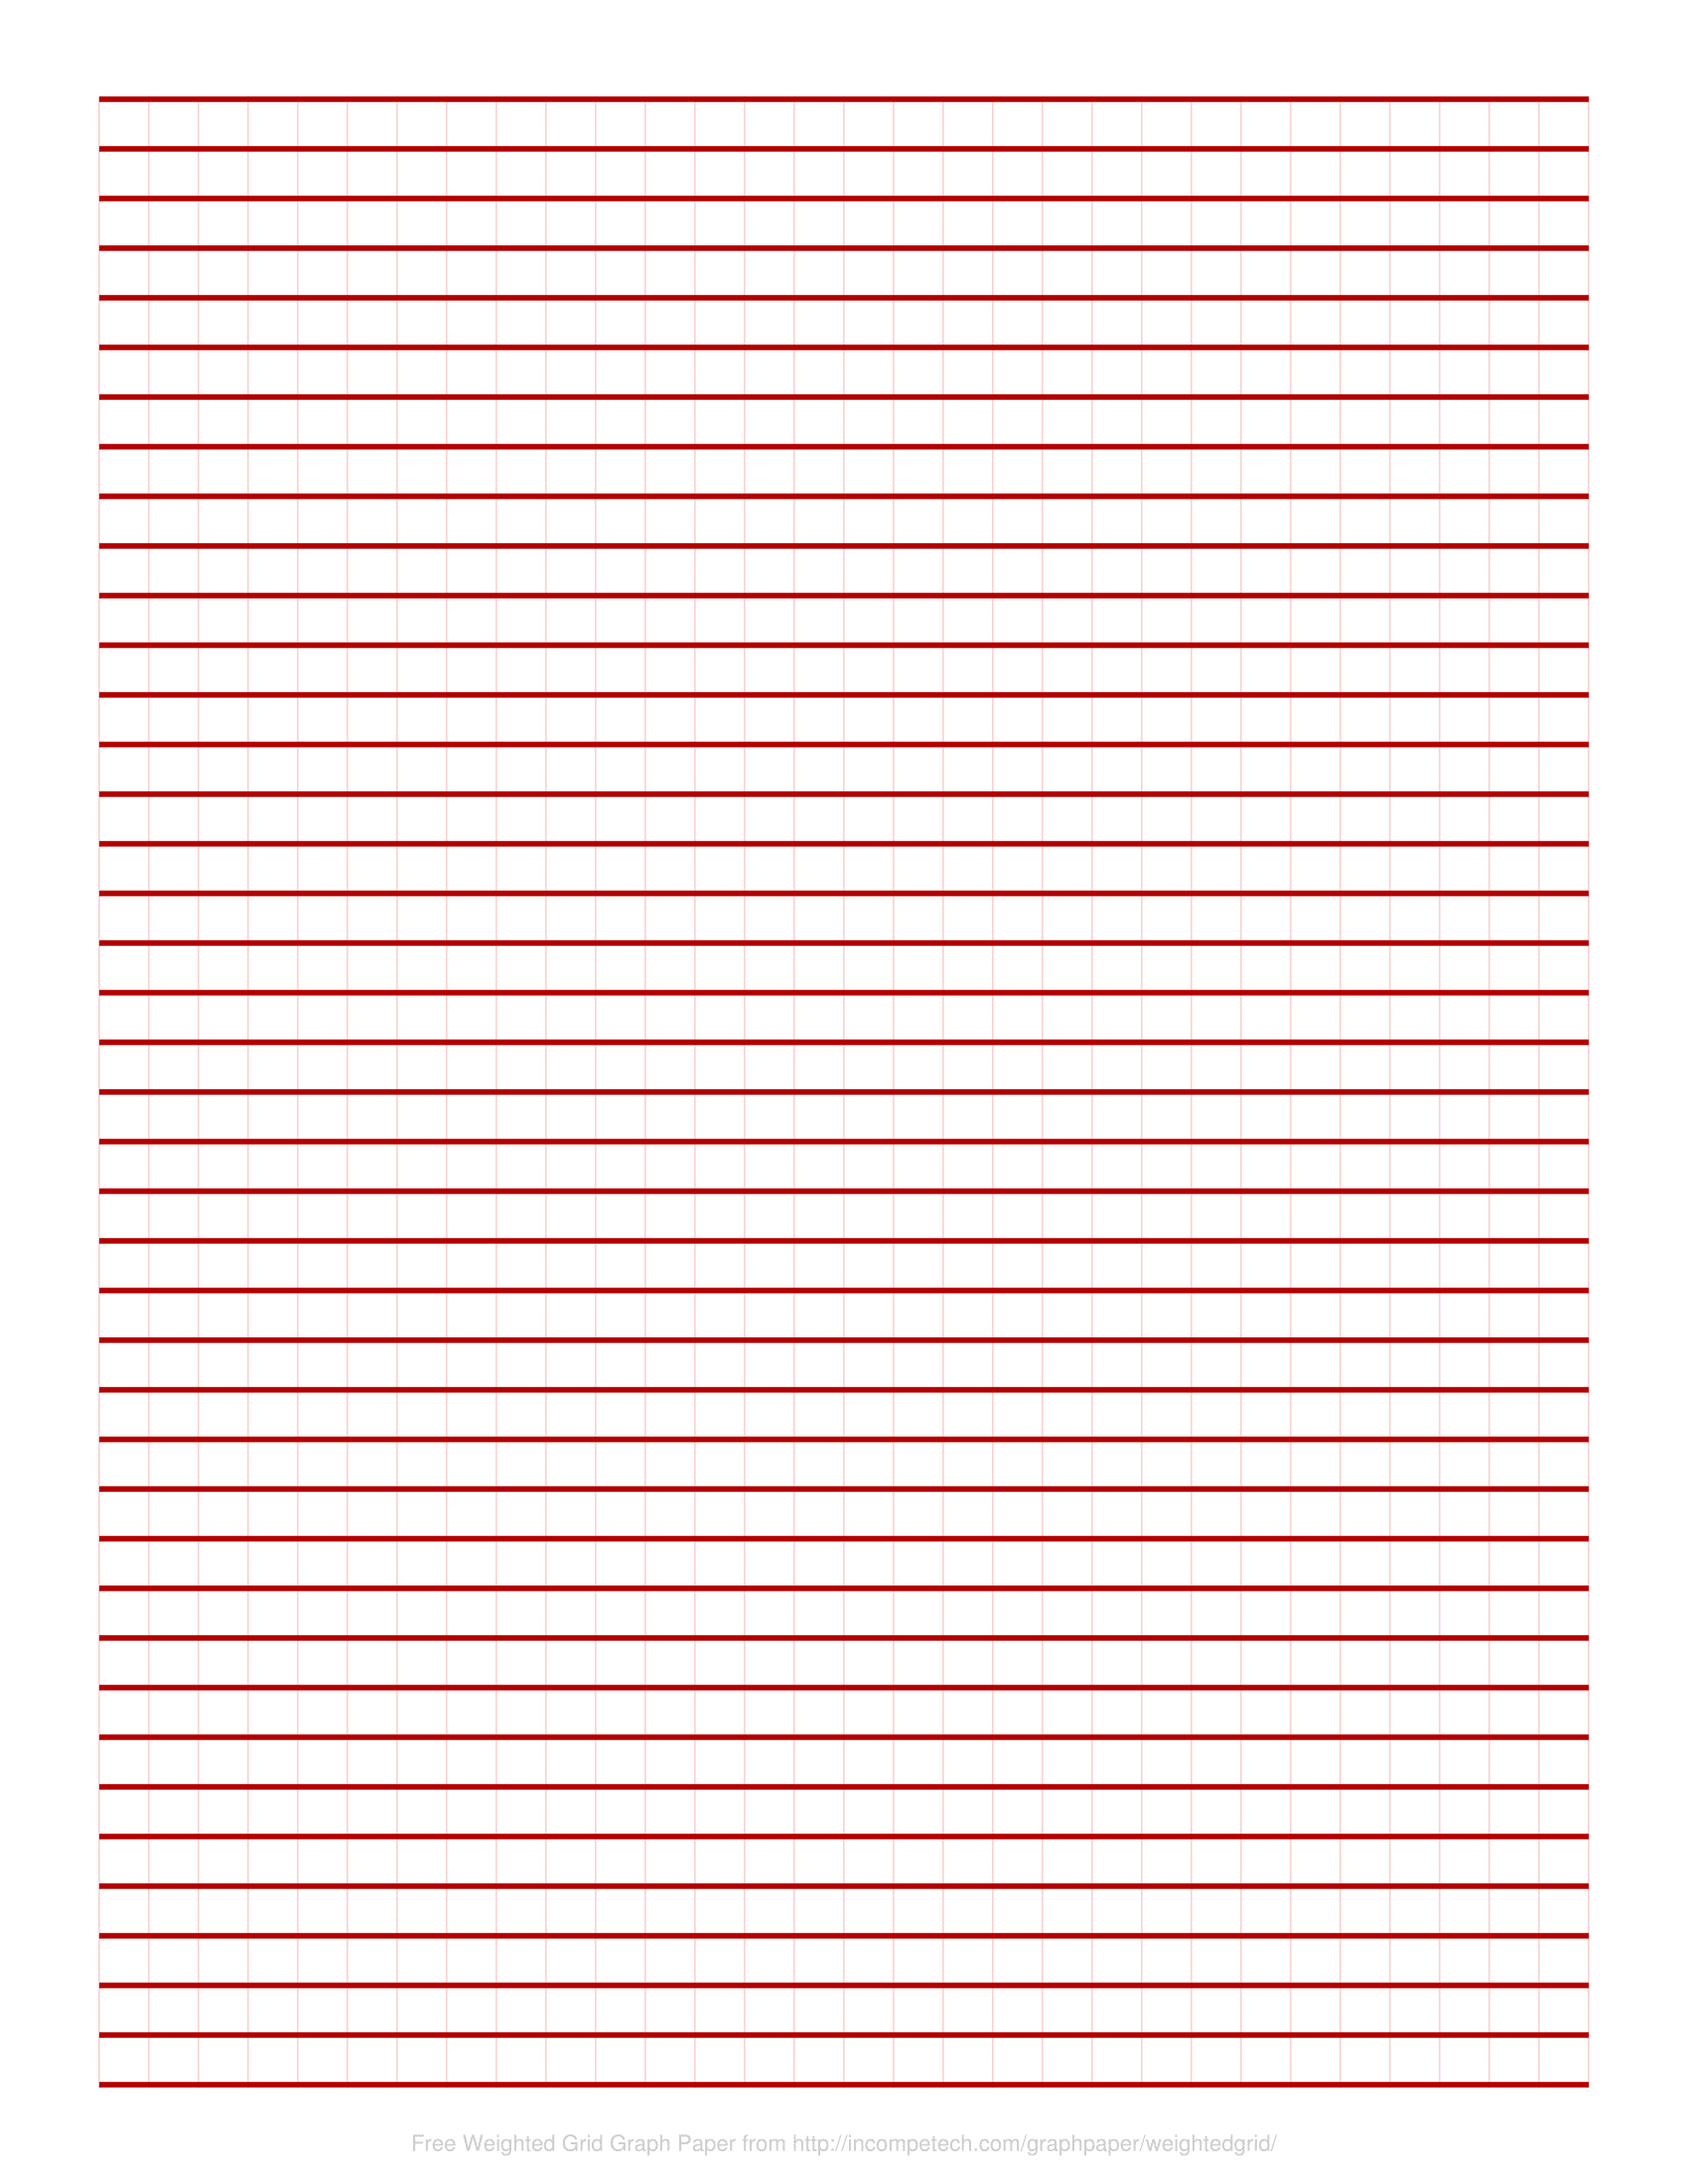 free online graph paper    weighted grid